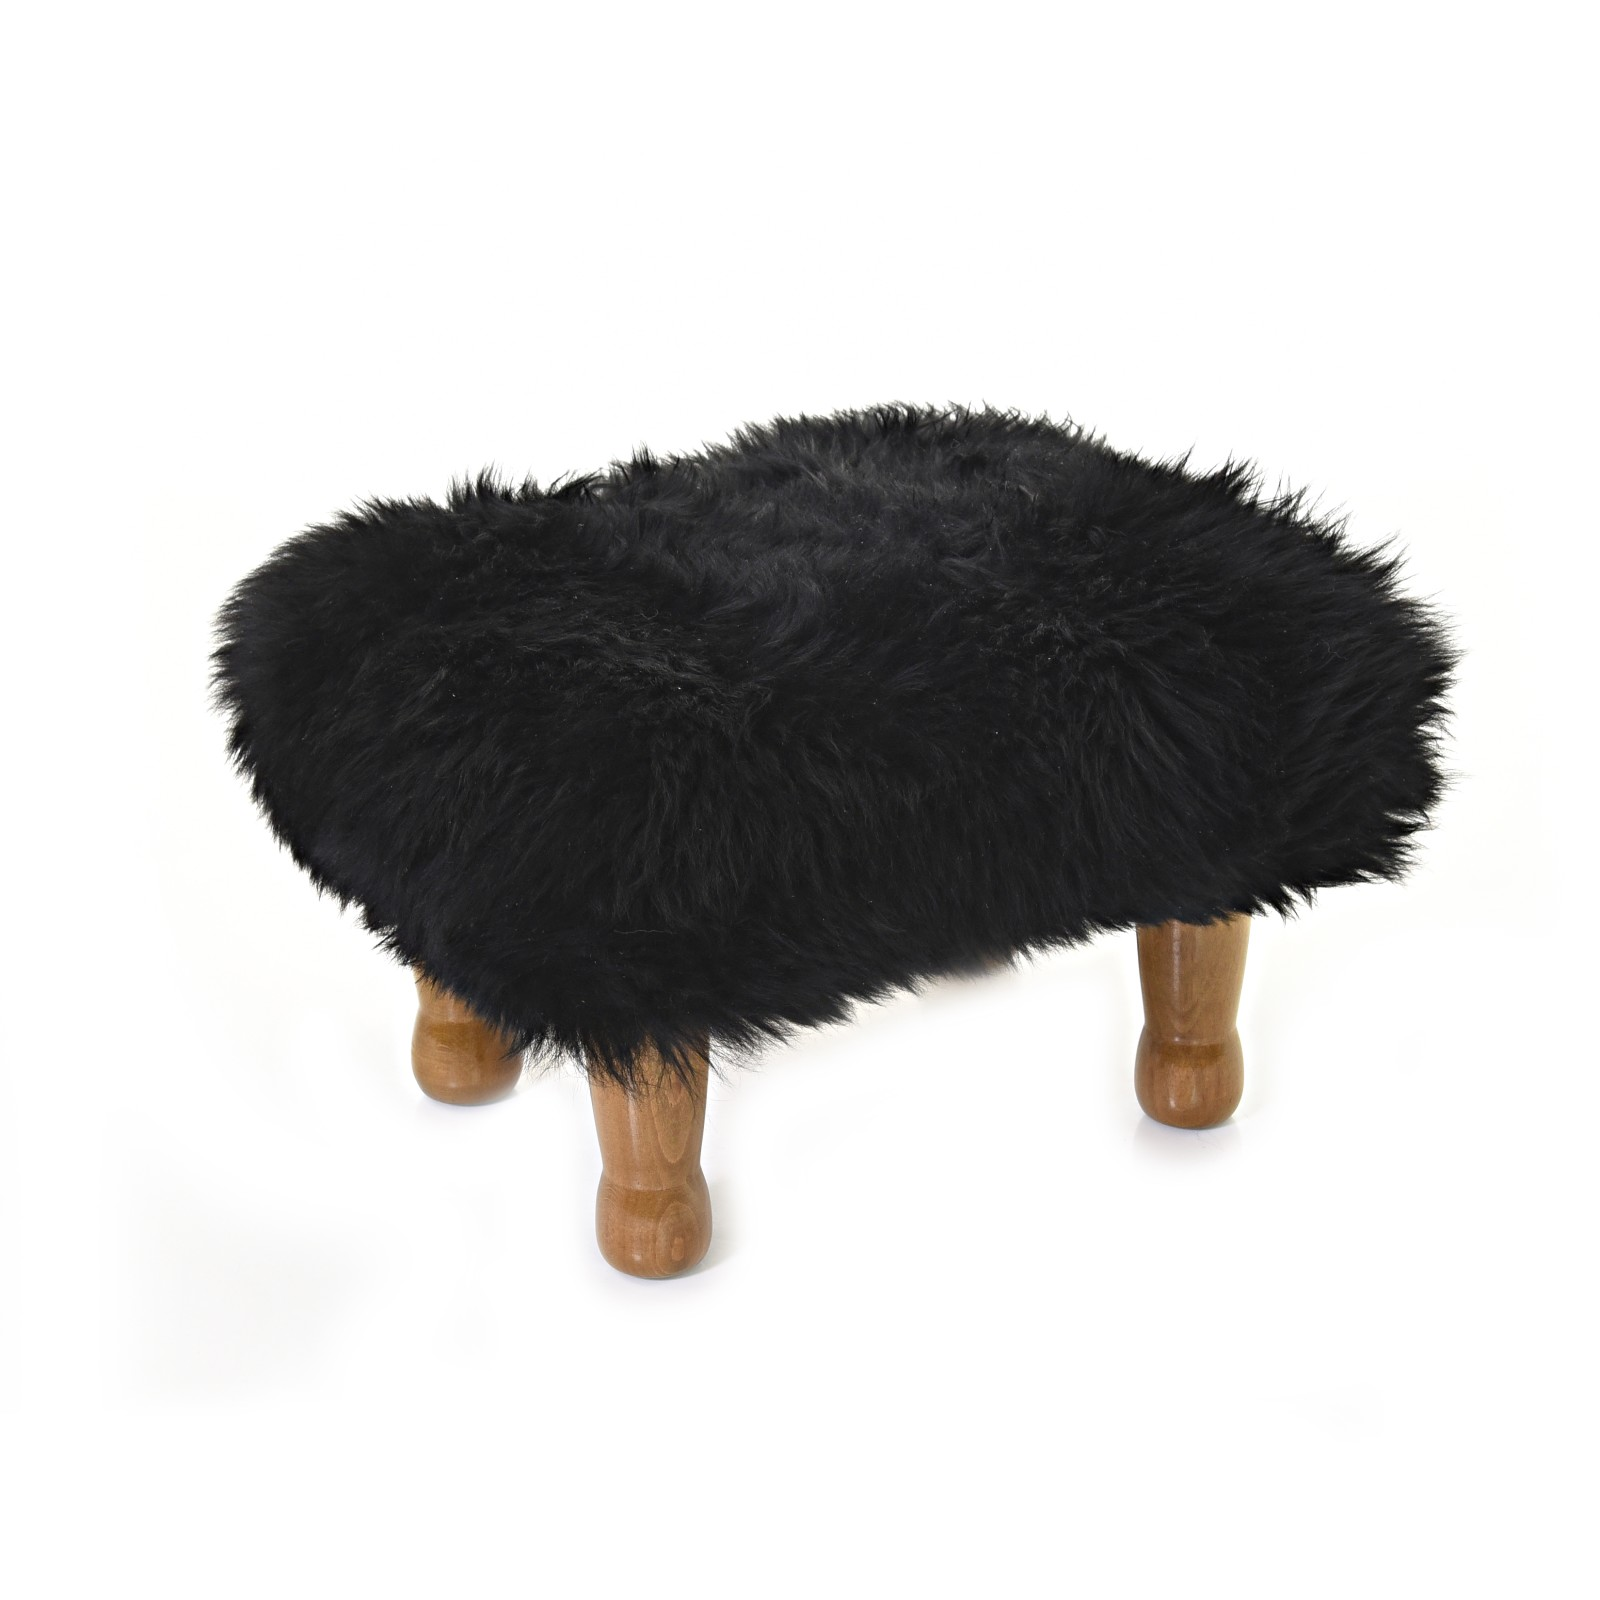 Anwen Sheepskin Footstool Coal Black